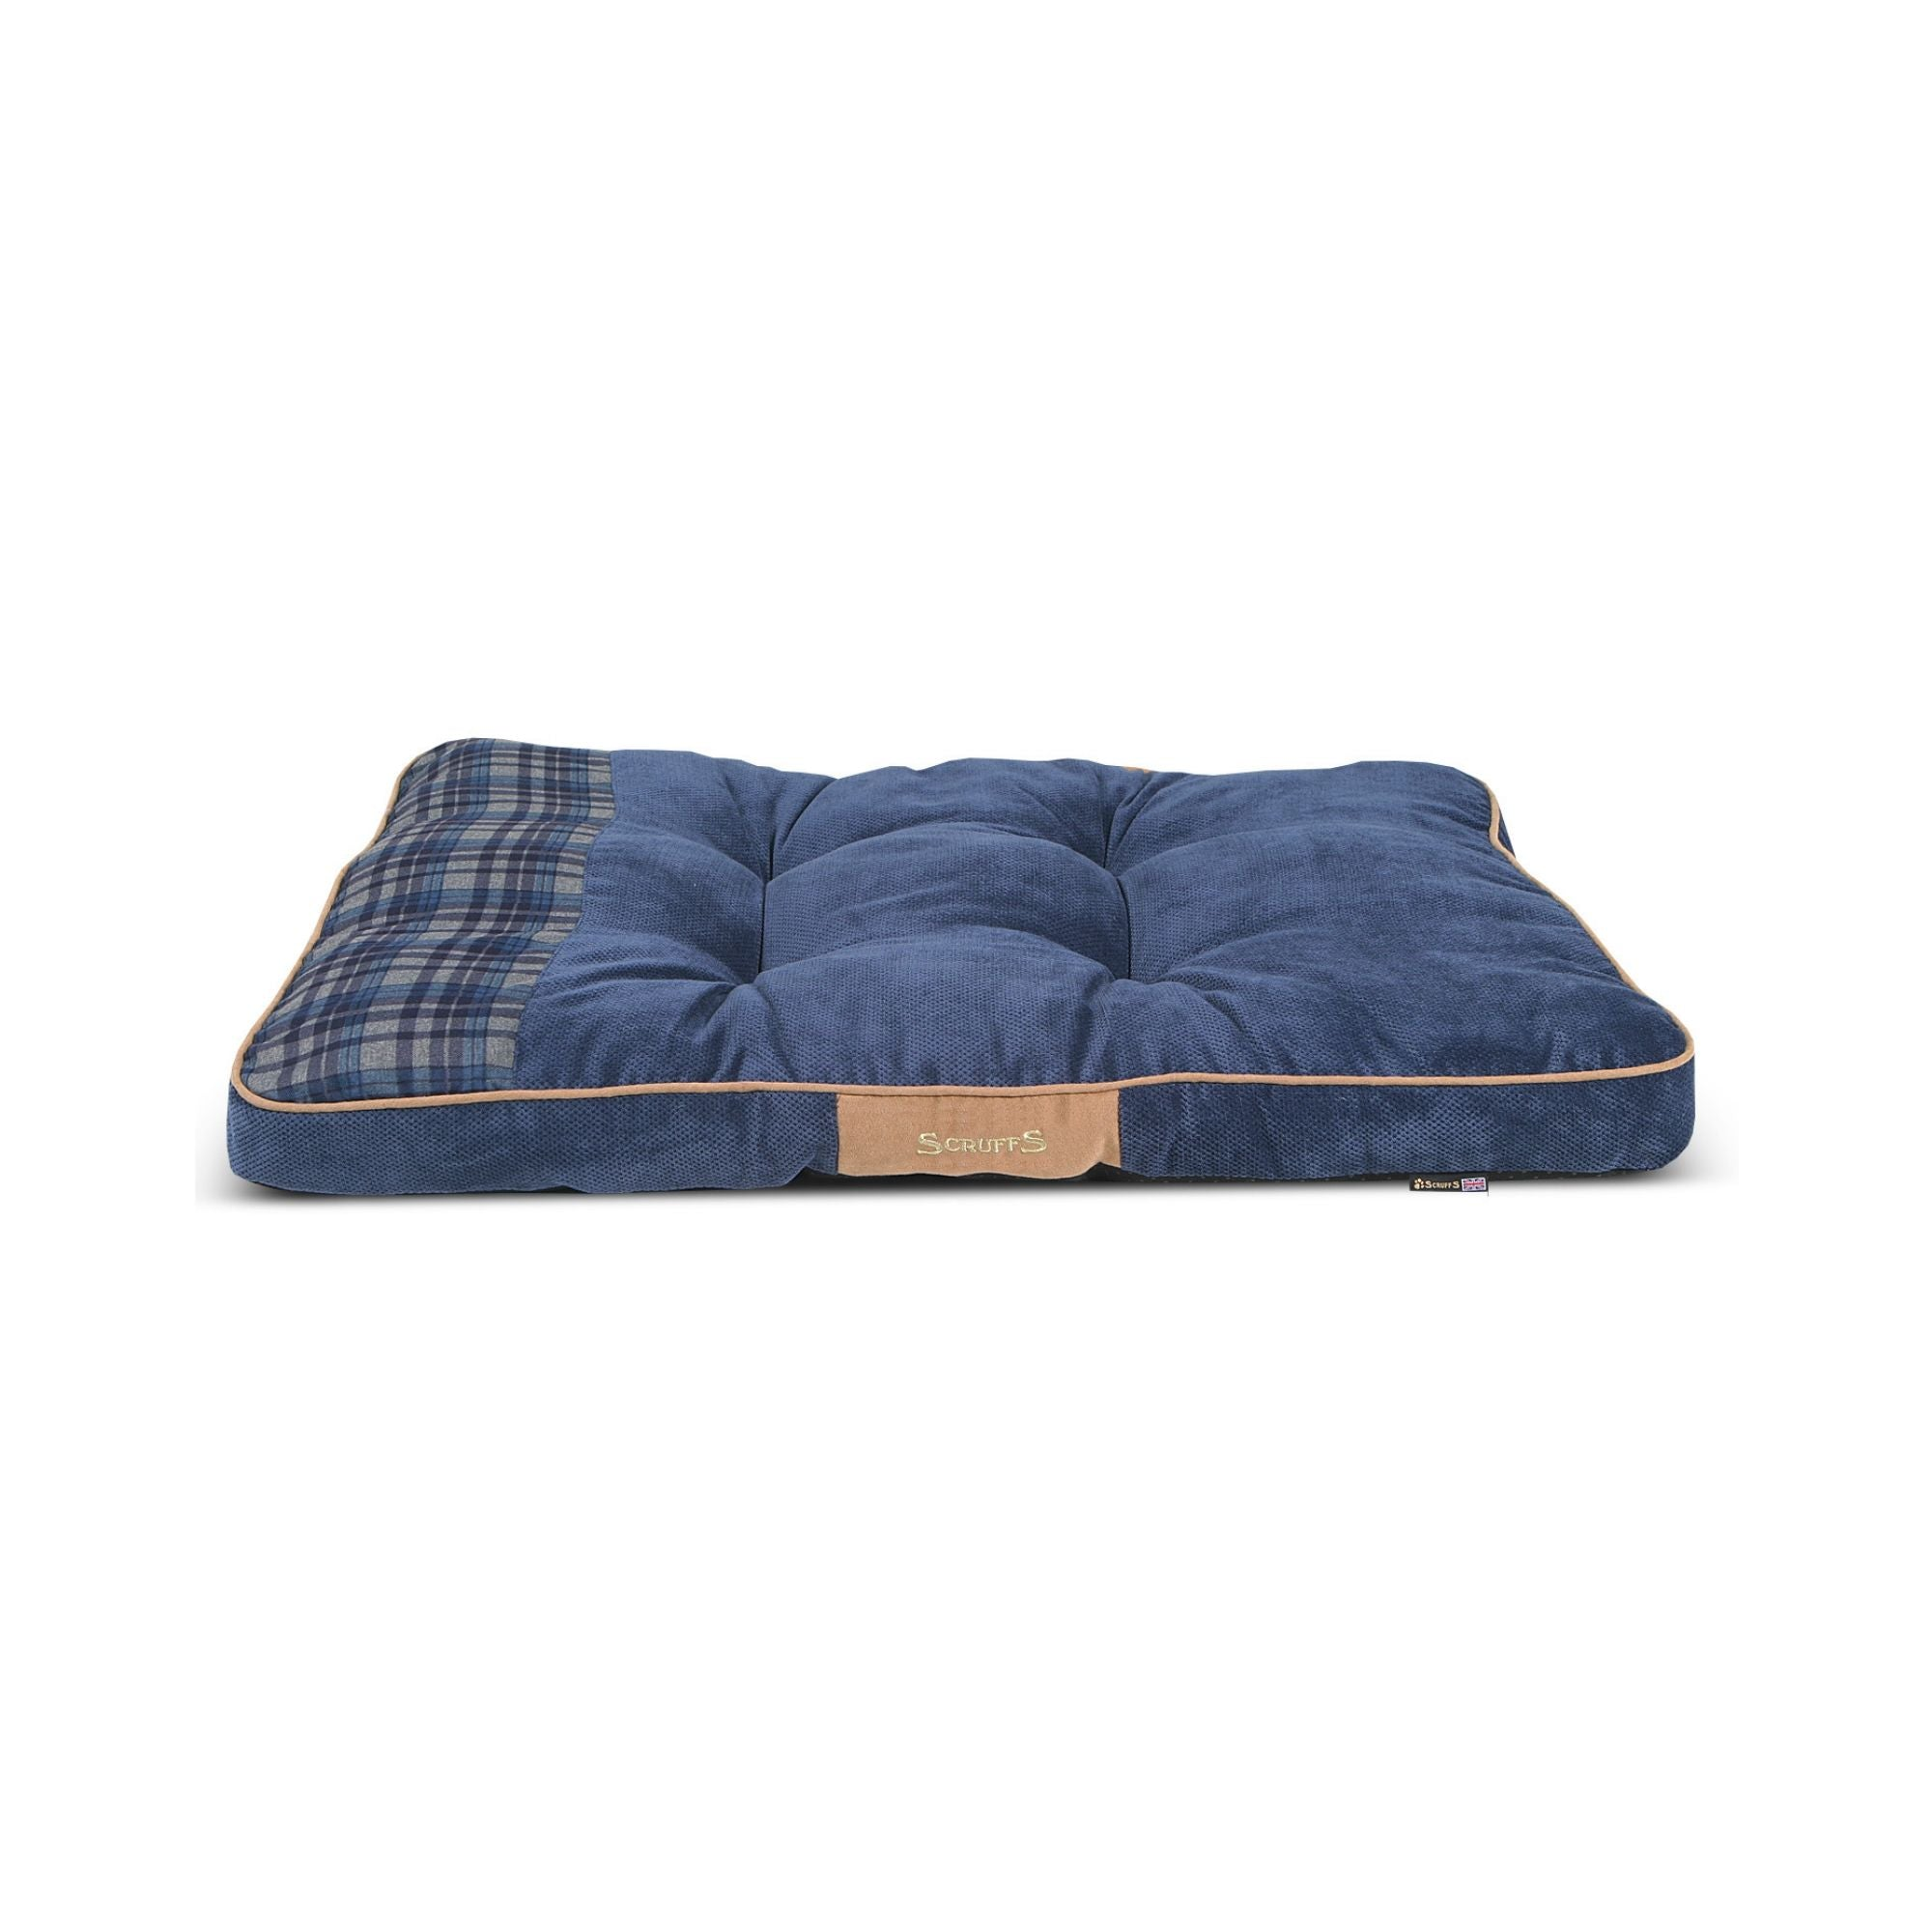 Scruffs Highland Mattress, Blue Tartan Pet Dog Bed | Barks & Bunnies